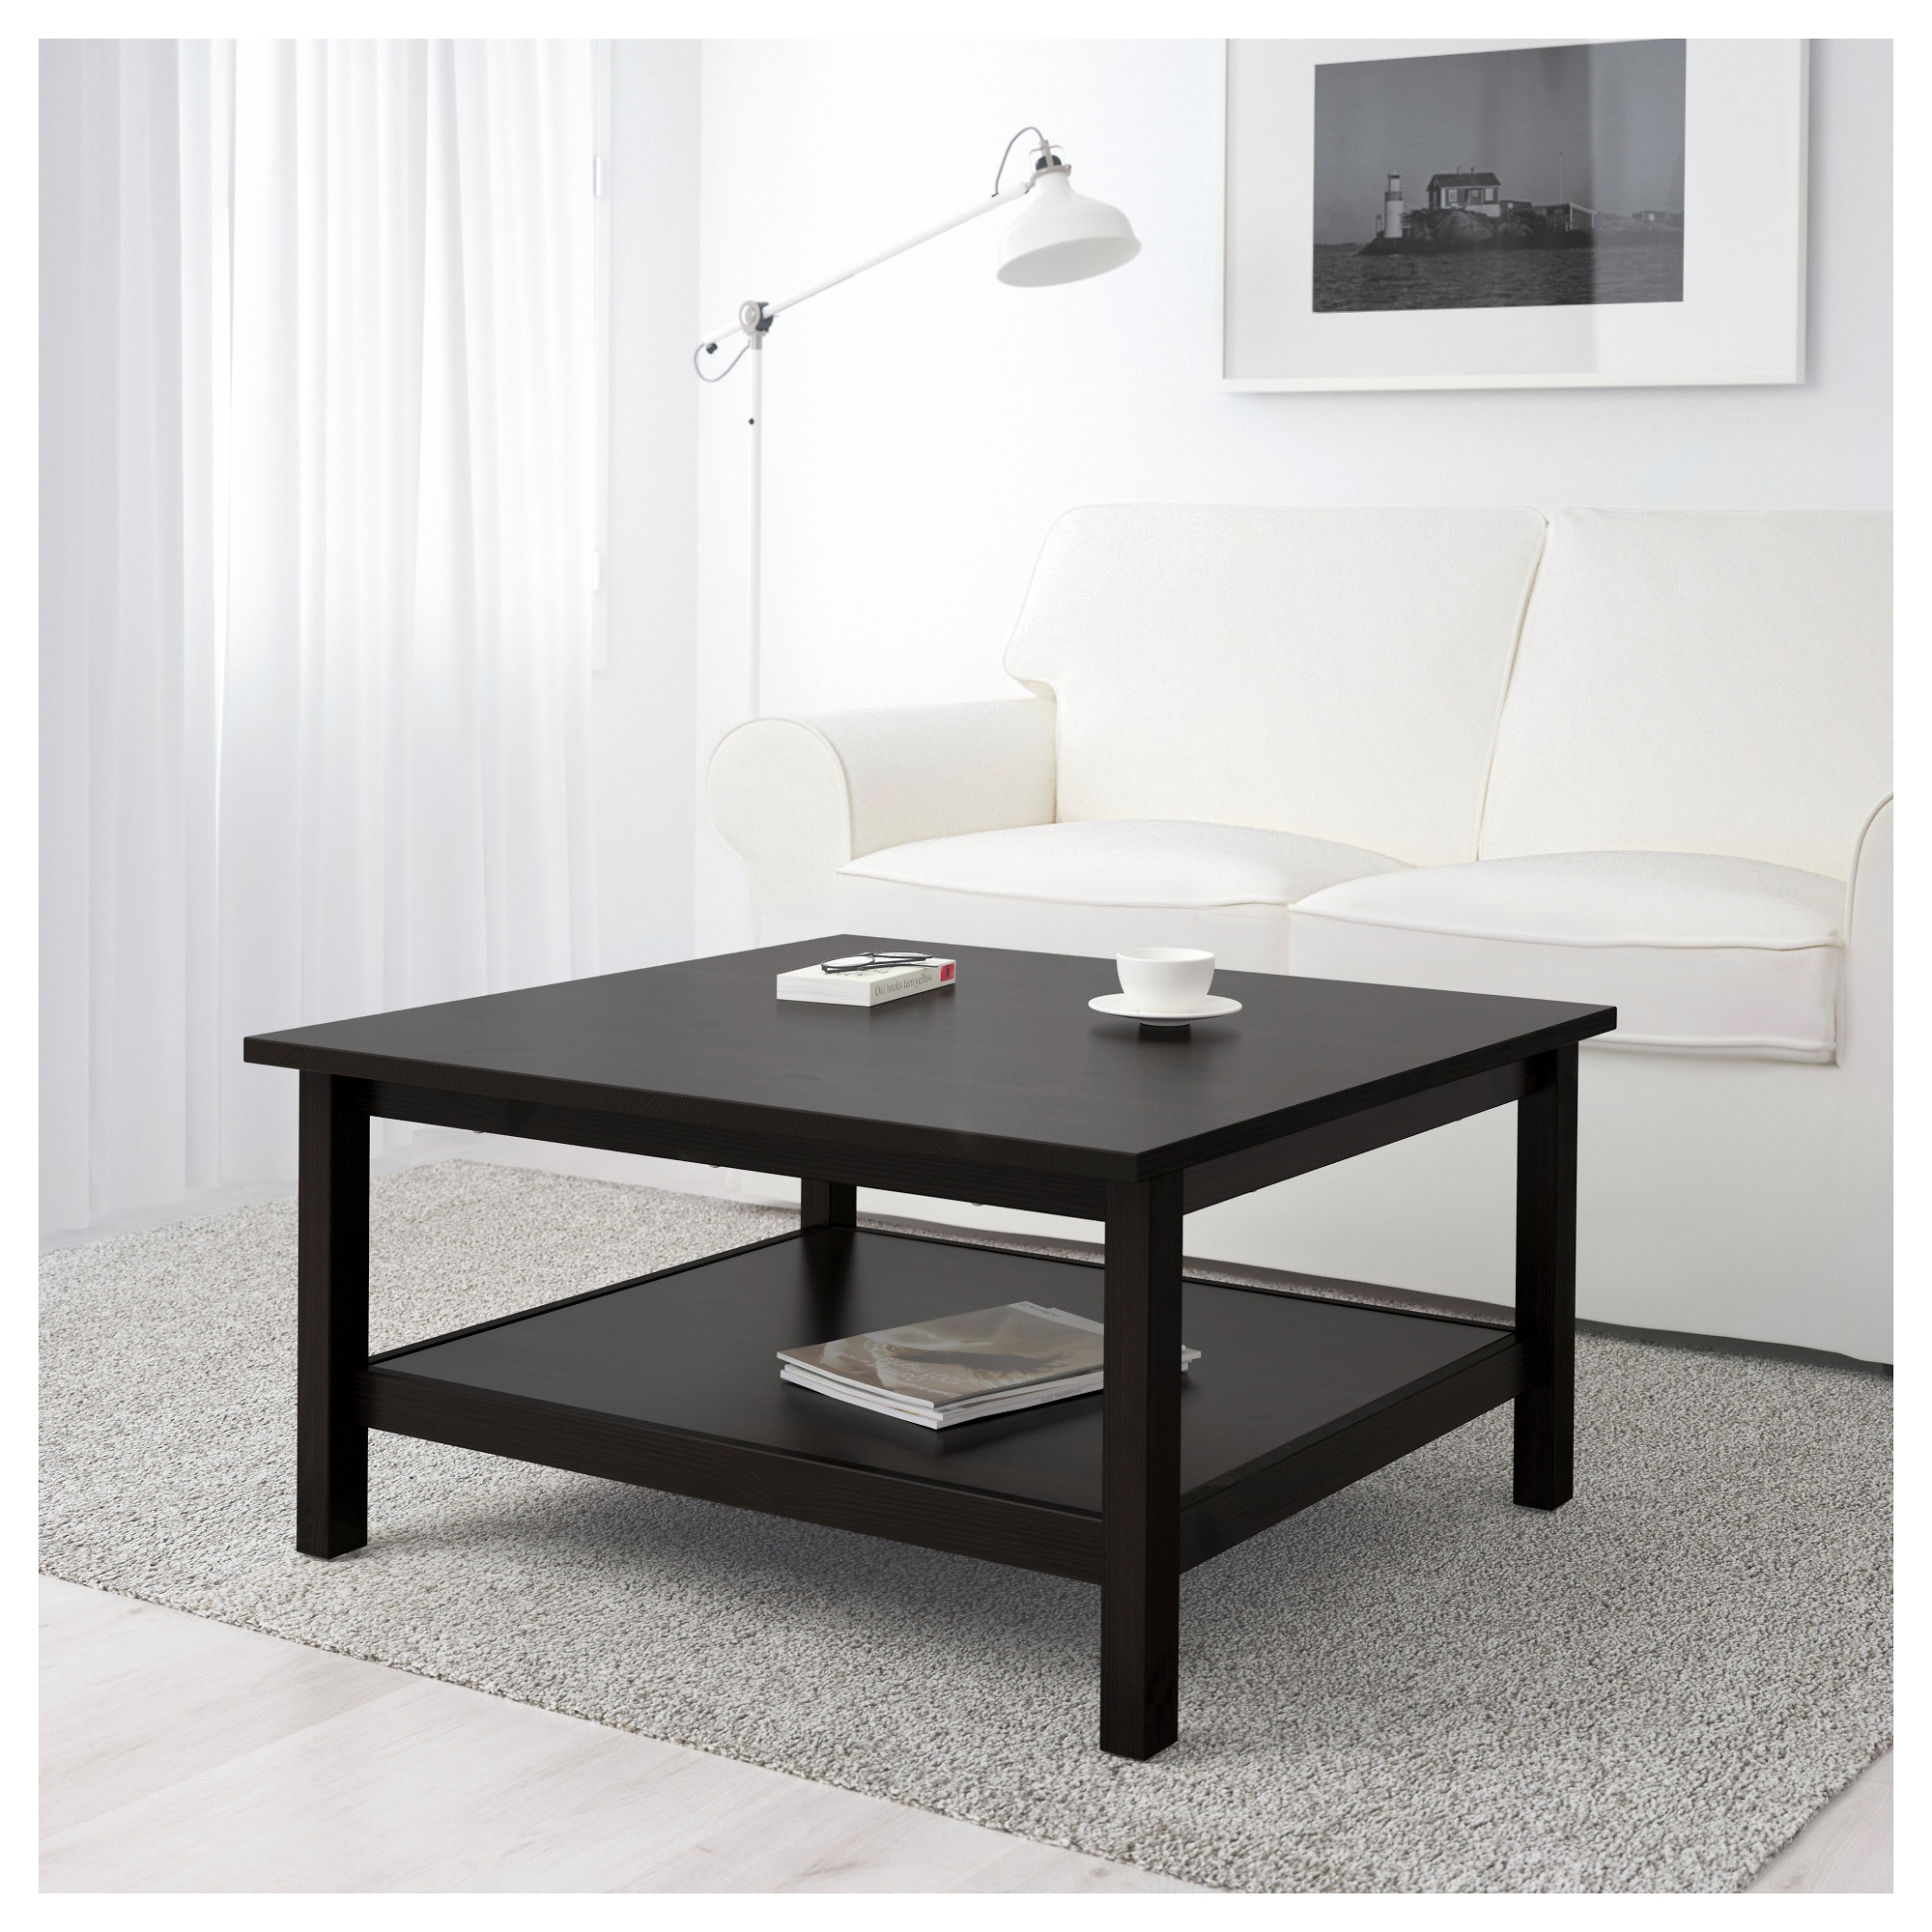 HEMNES Coffee table white stain IKEA